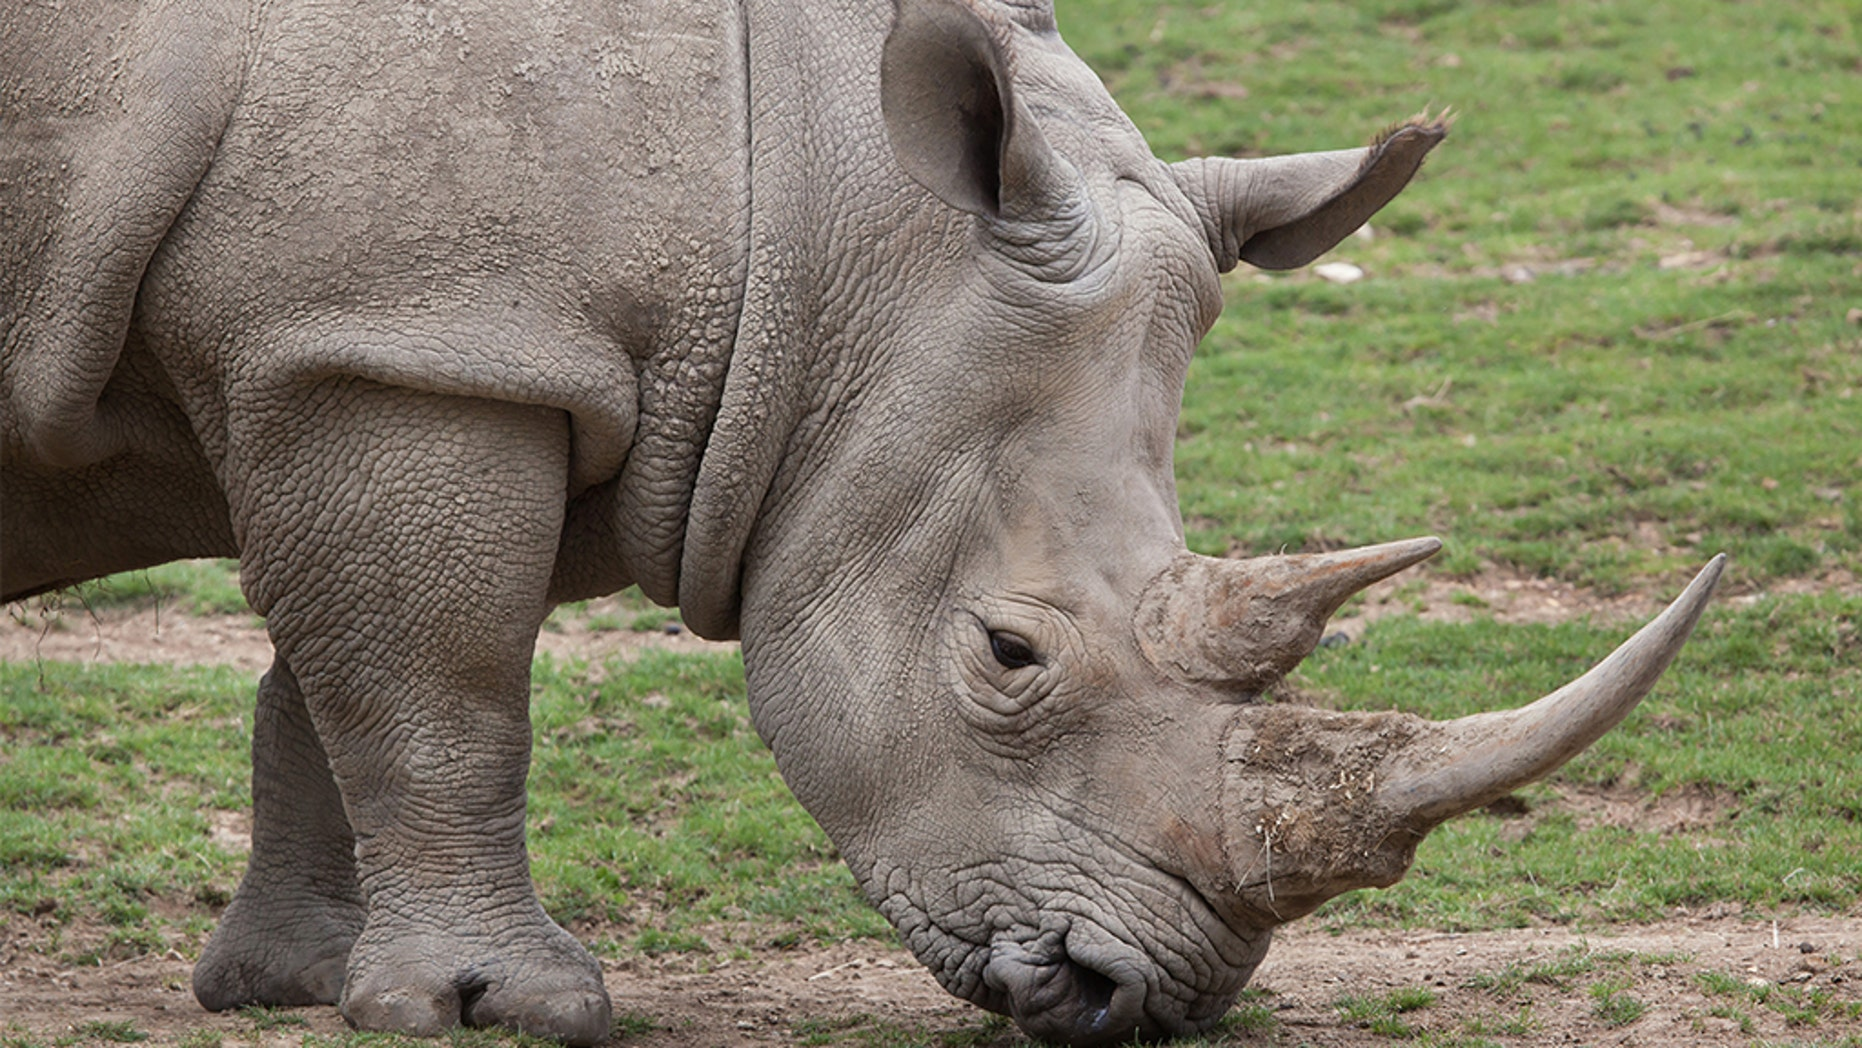 A suspected rhino poacher was trampled by an elephant and then eaten by lions at a South African national park.